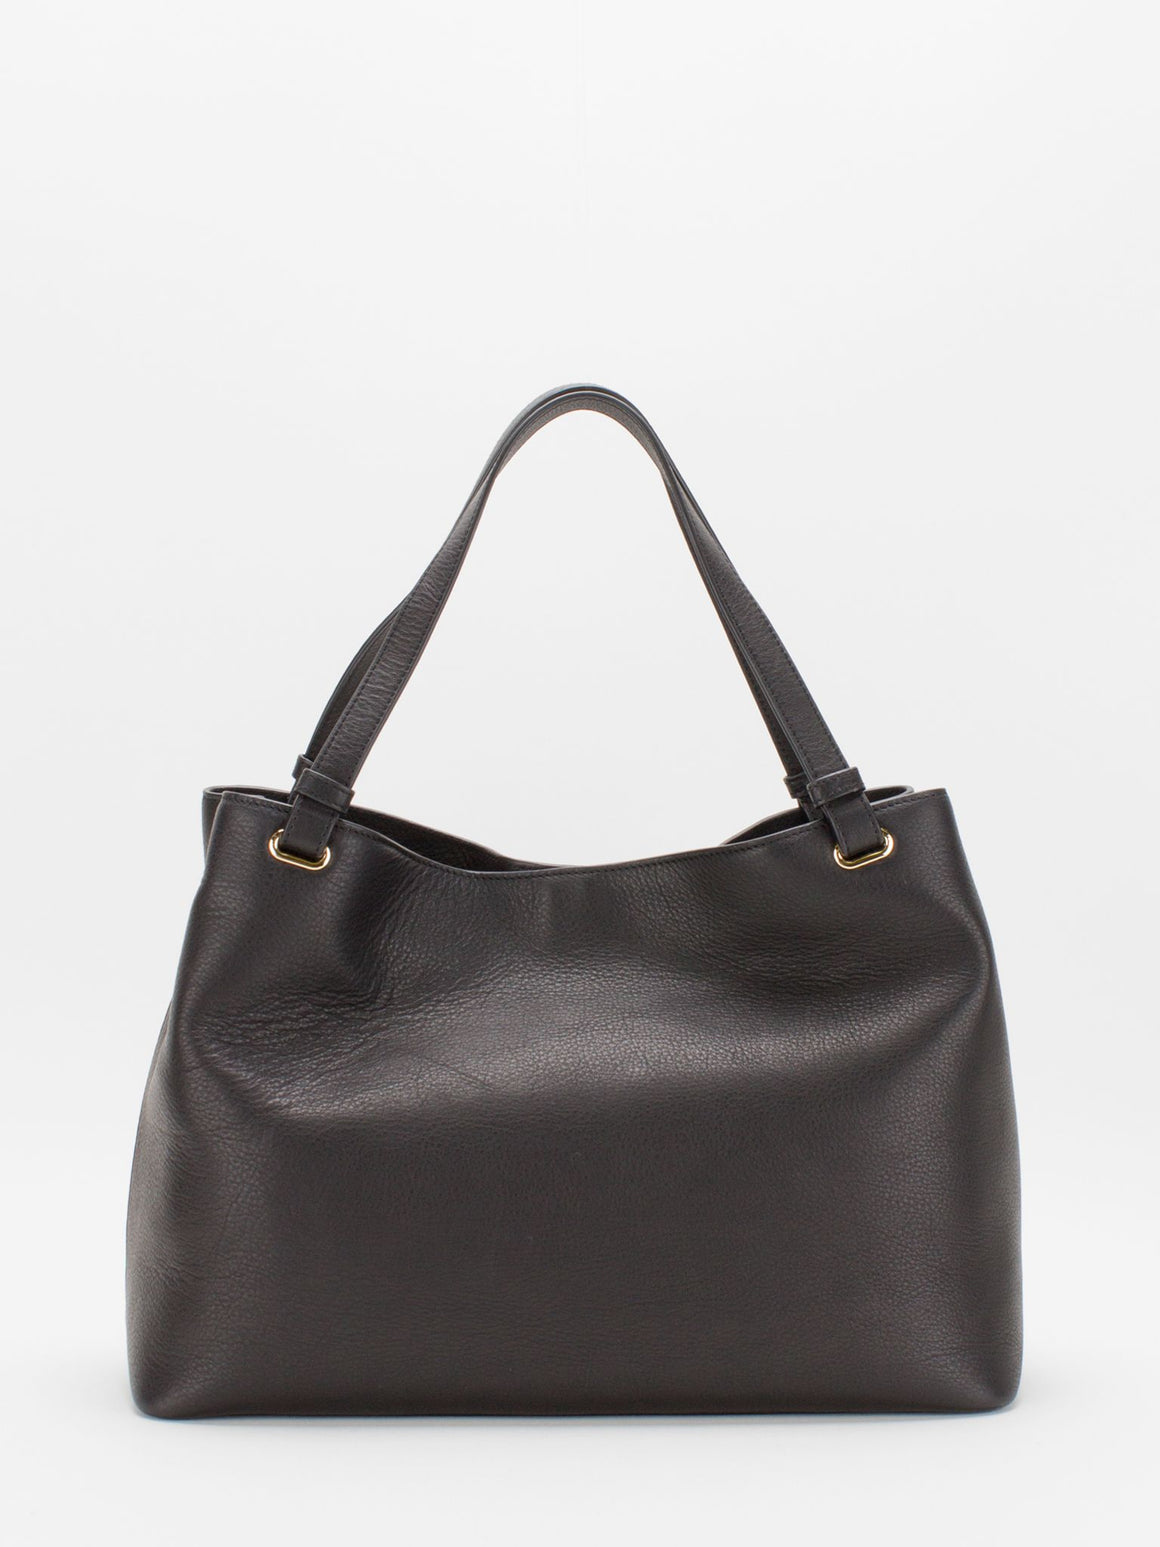 Kaitlyn Leather Shopper Tote - Black